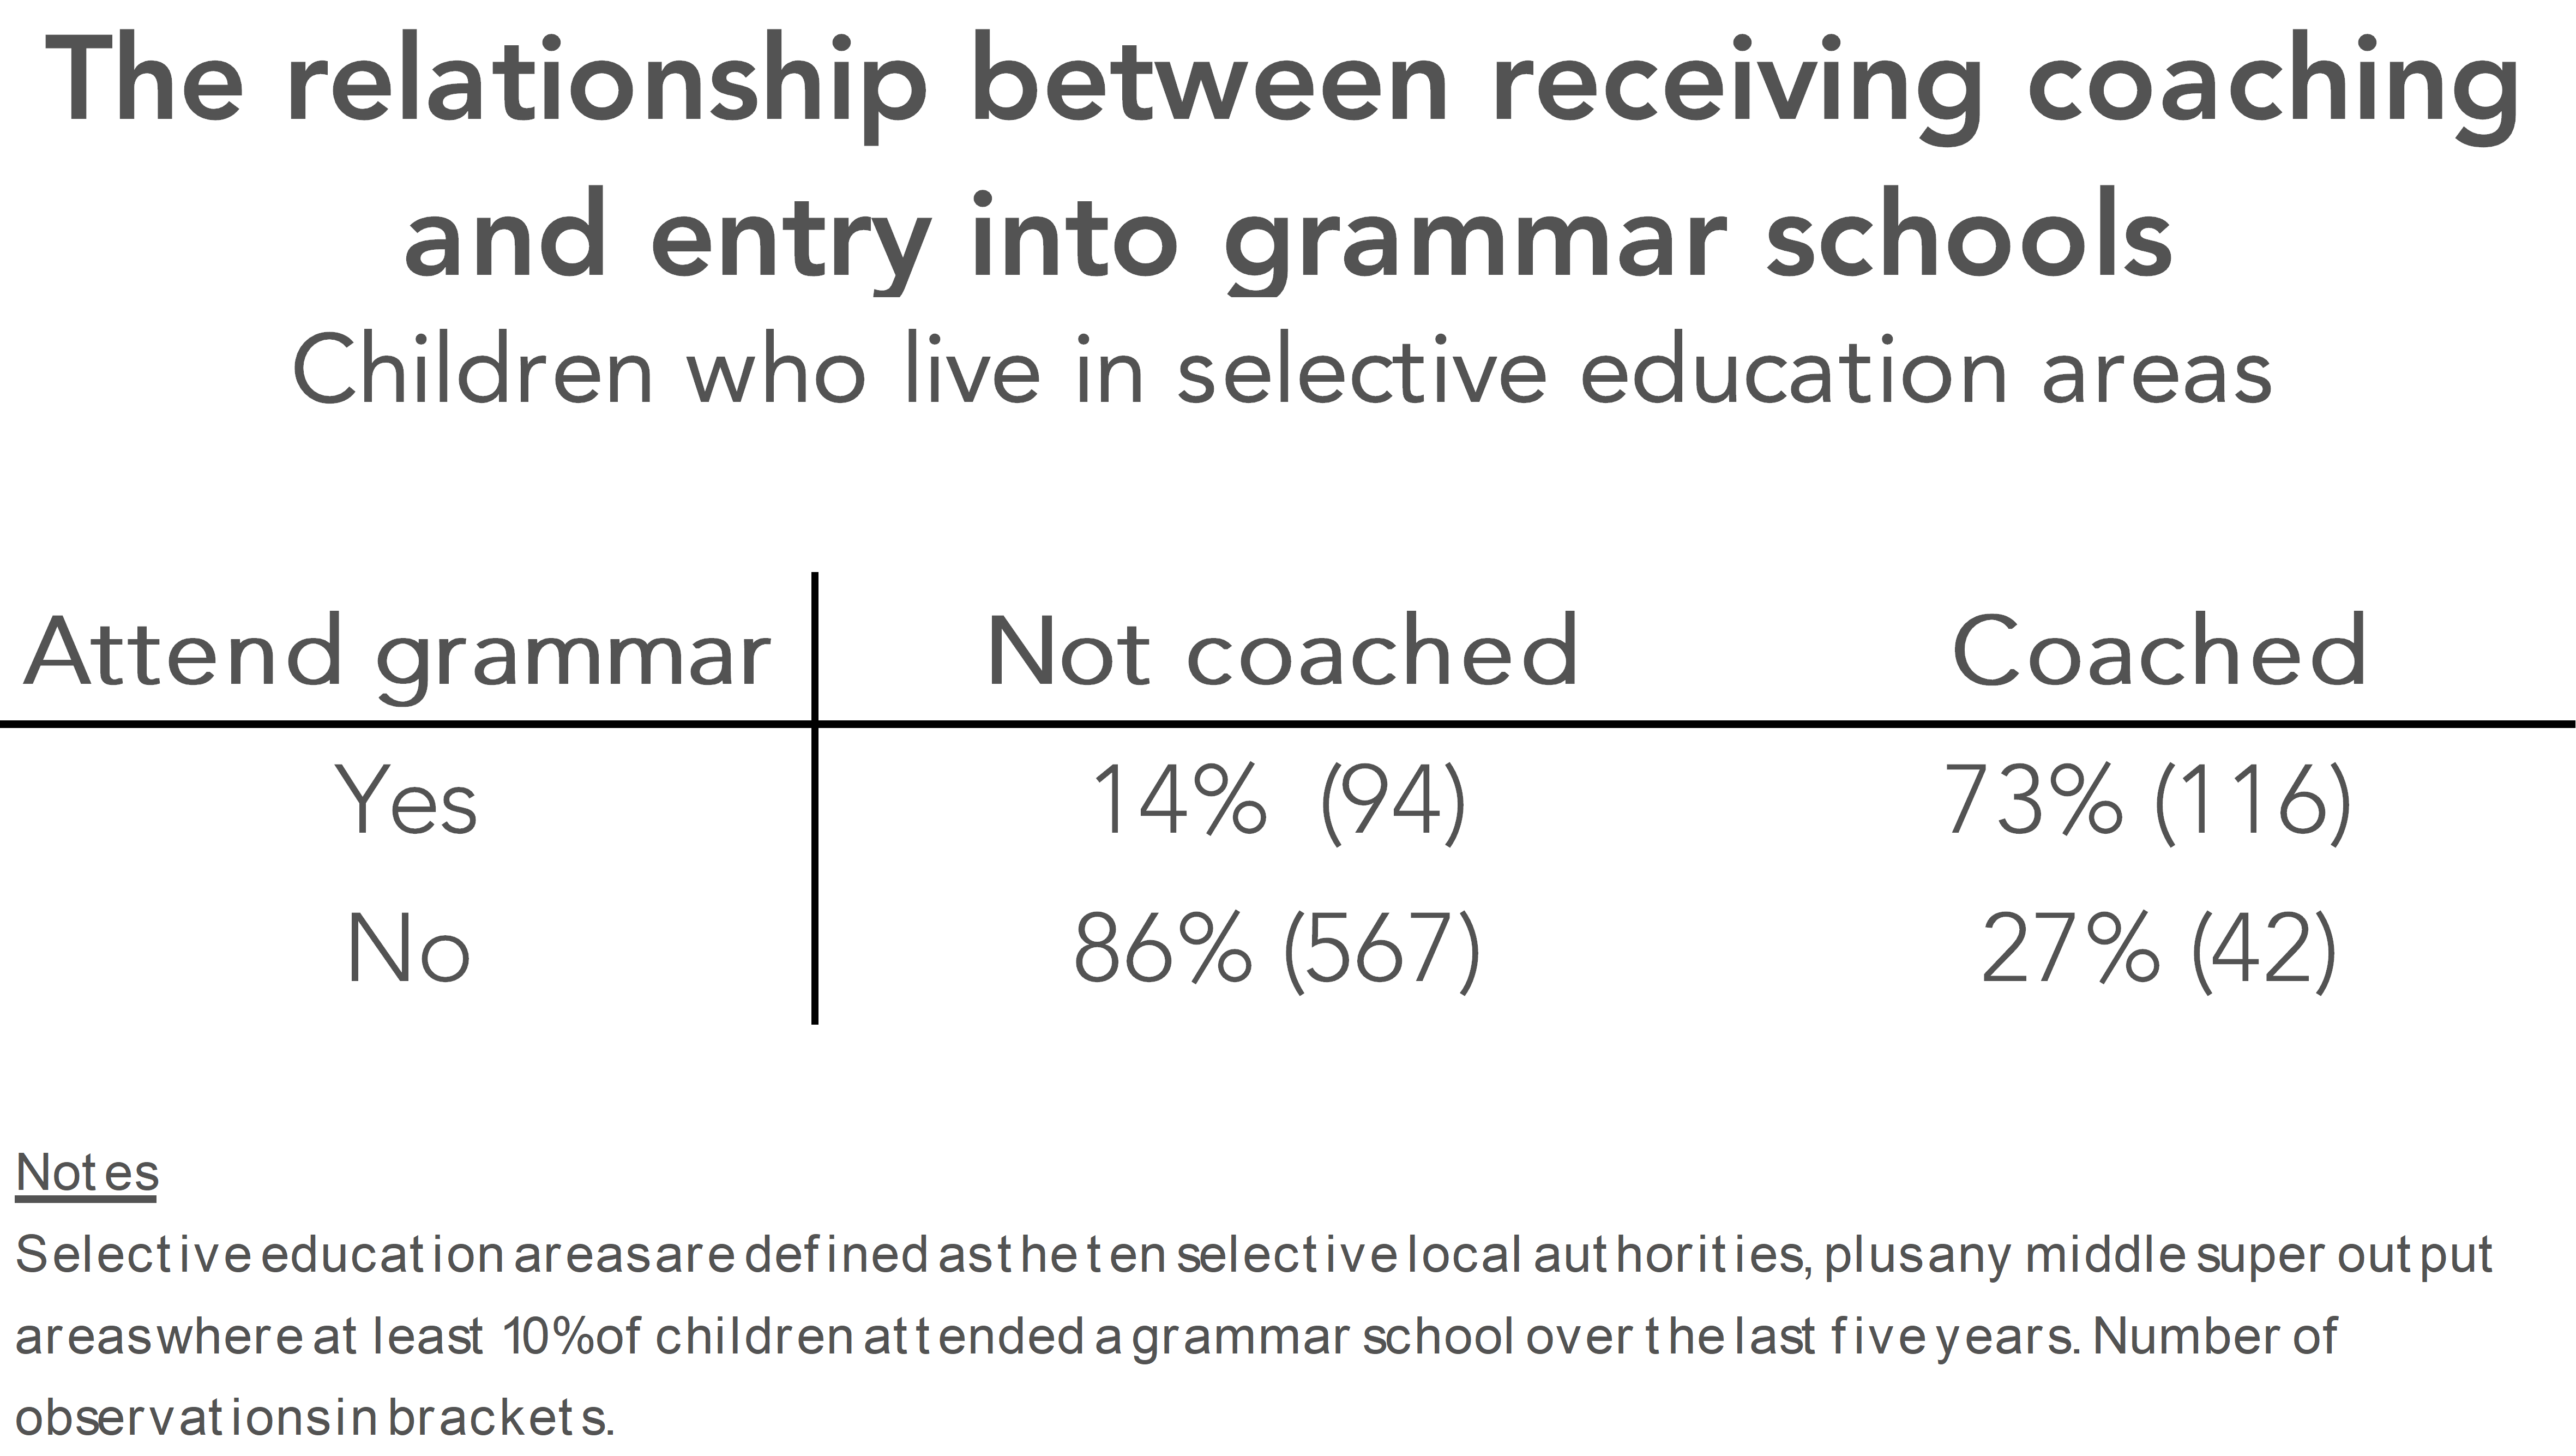 How much does private tutoring matter for grammar school admissions?